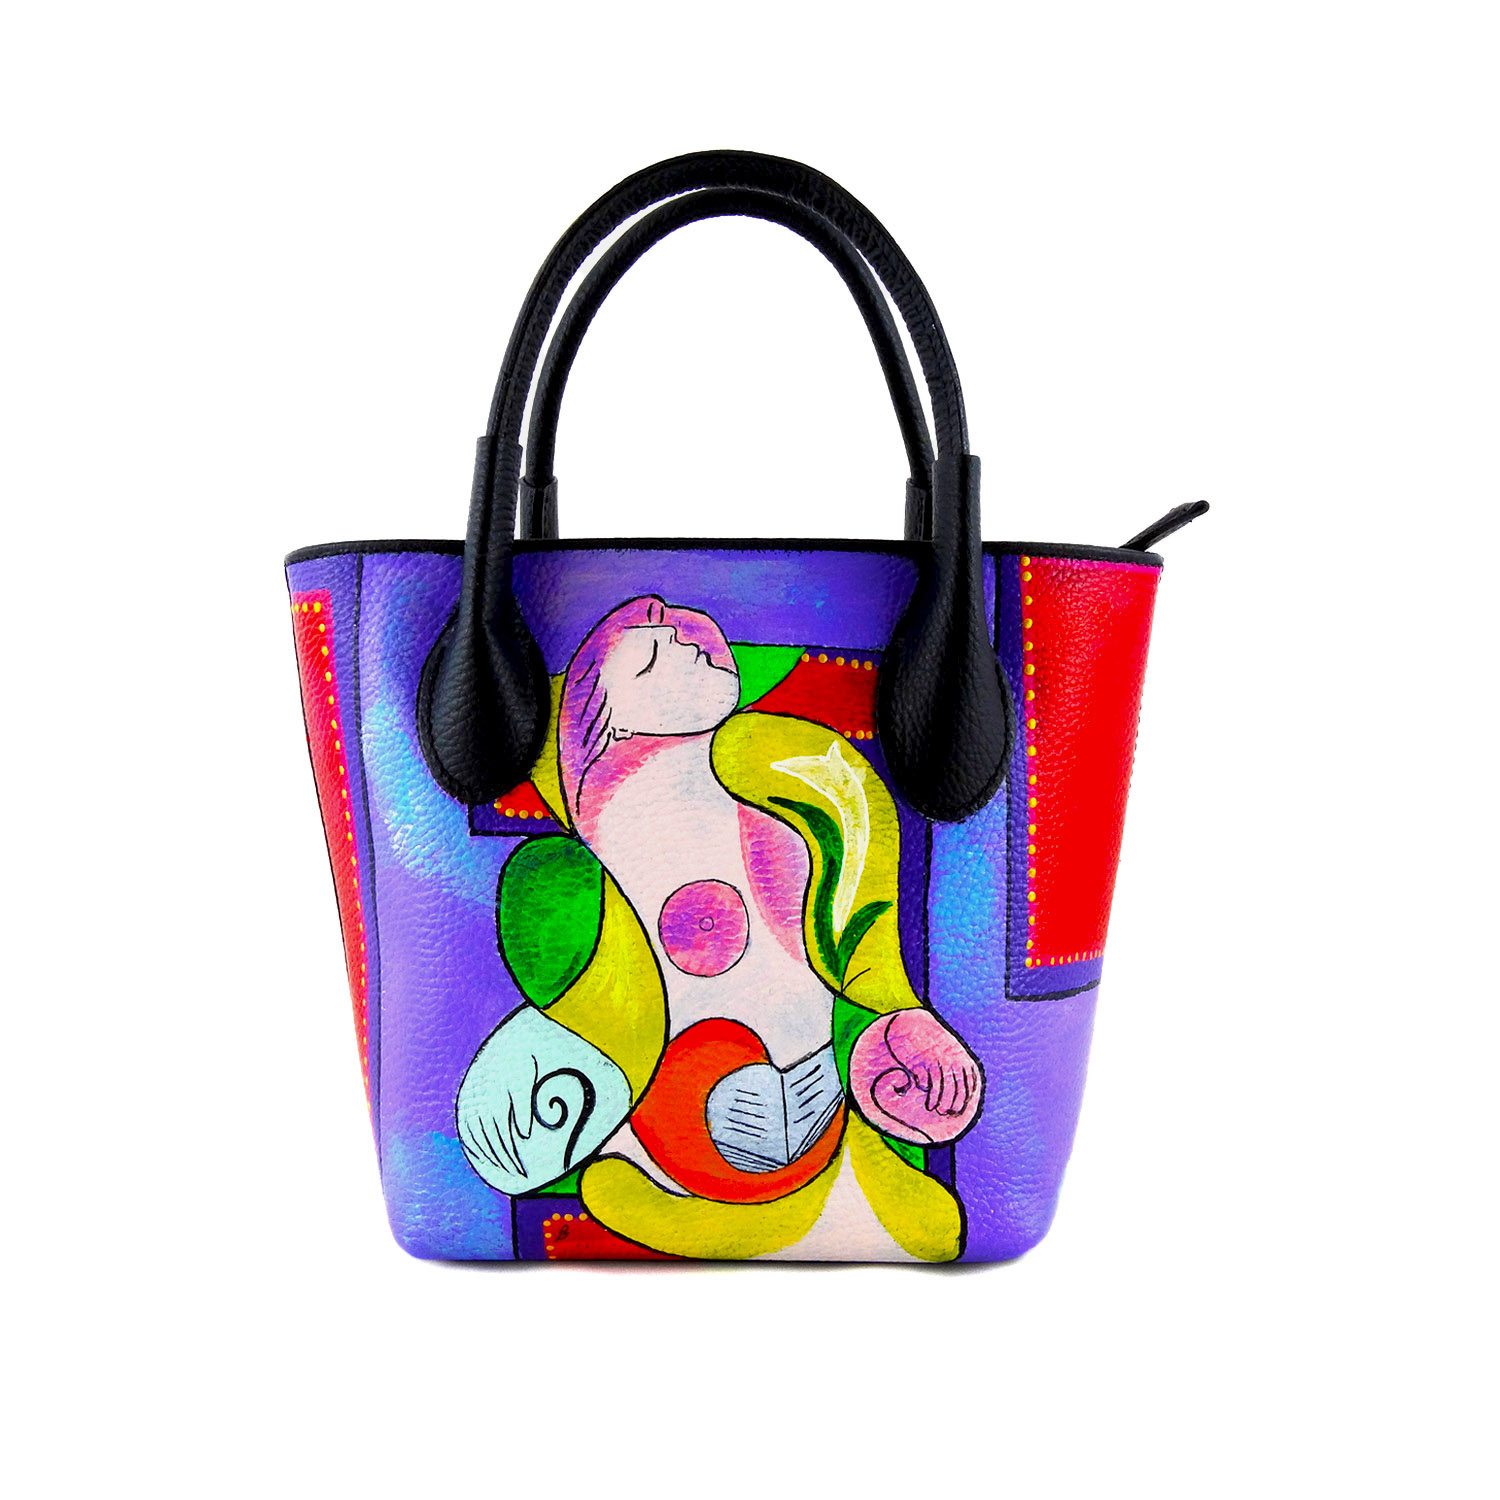 Hand-painted bag - Reading Marie Therese by Picasso